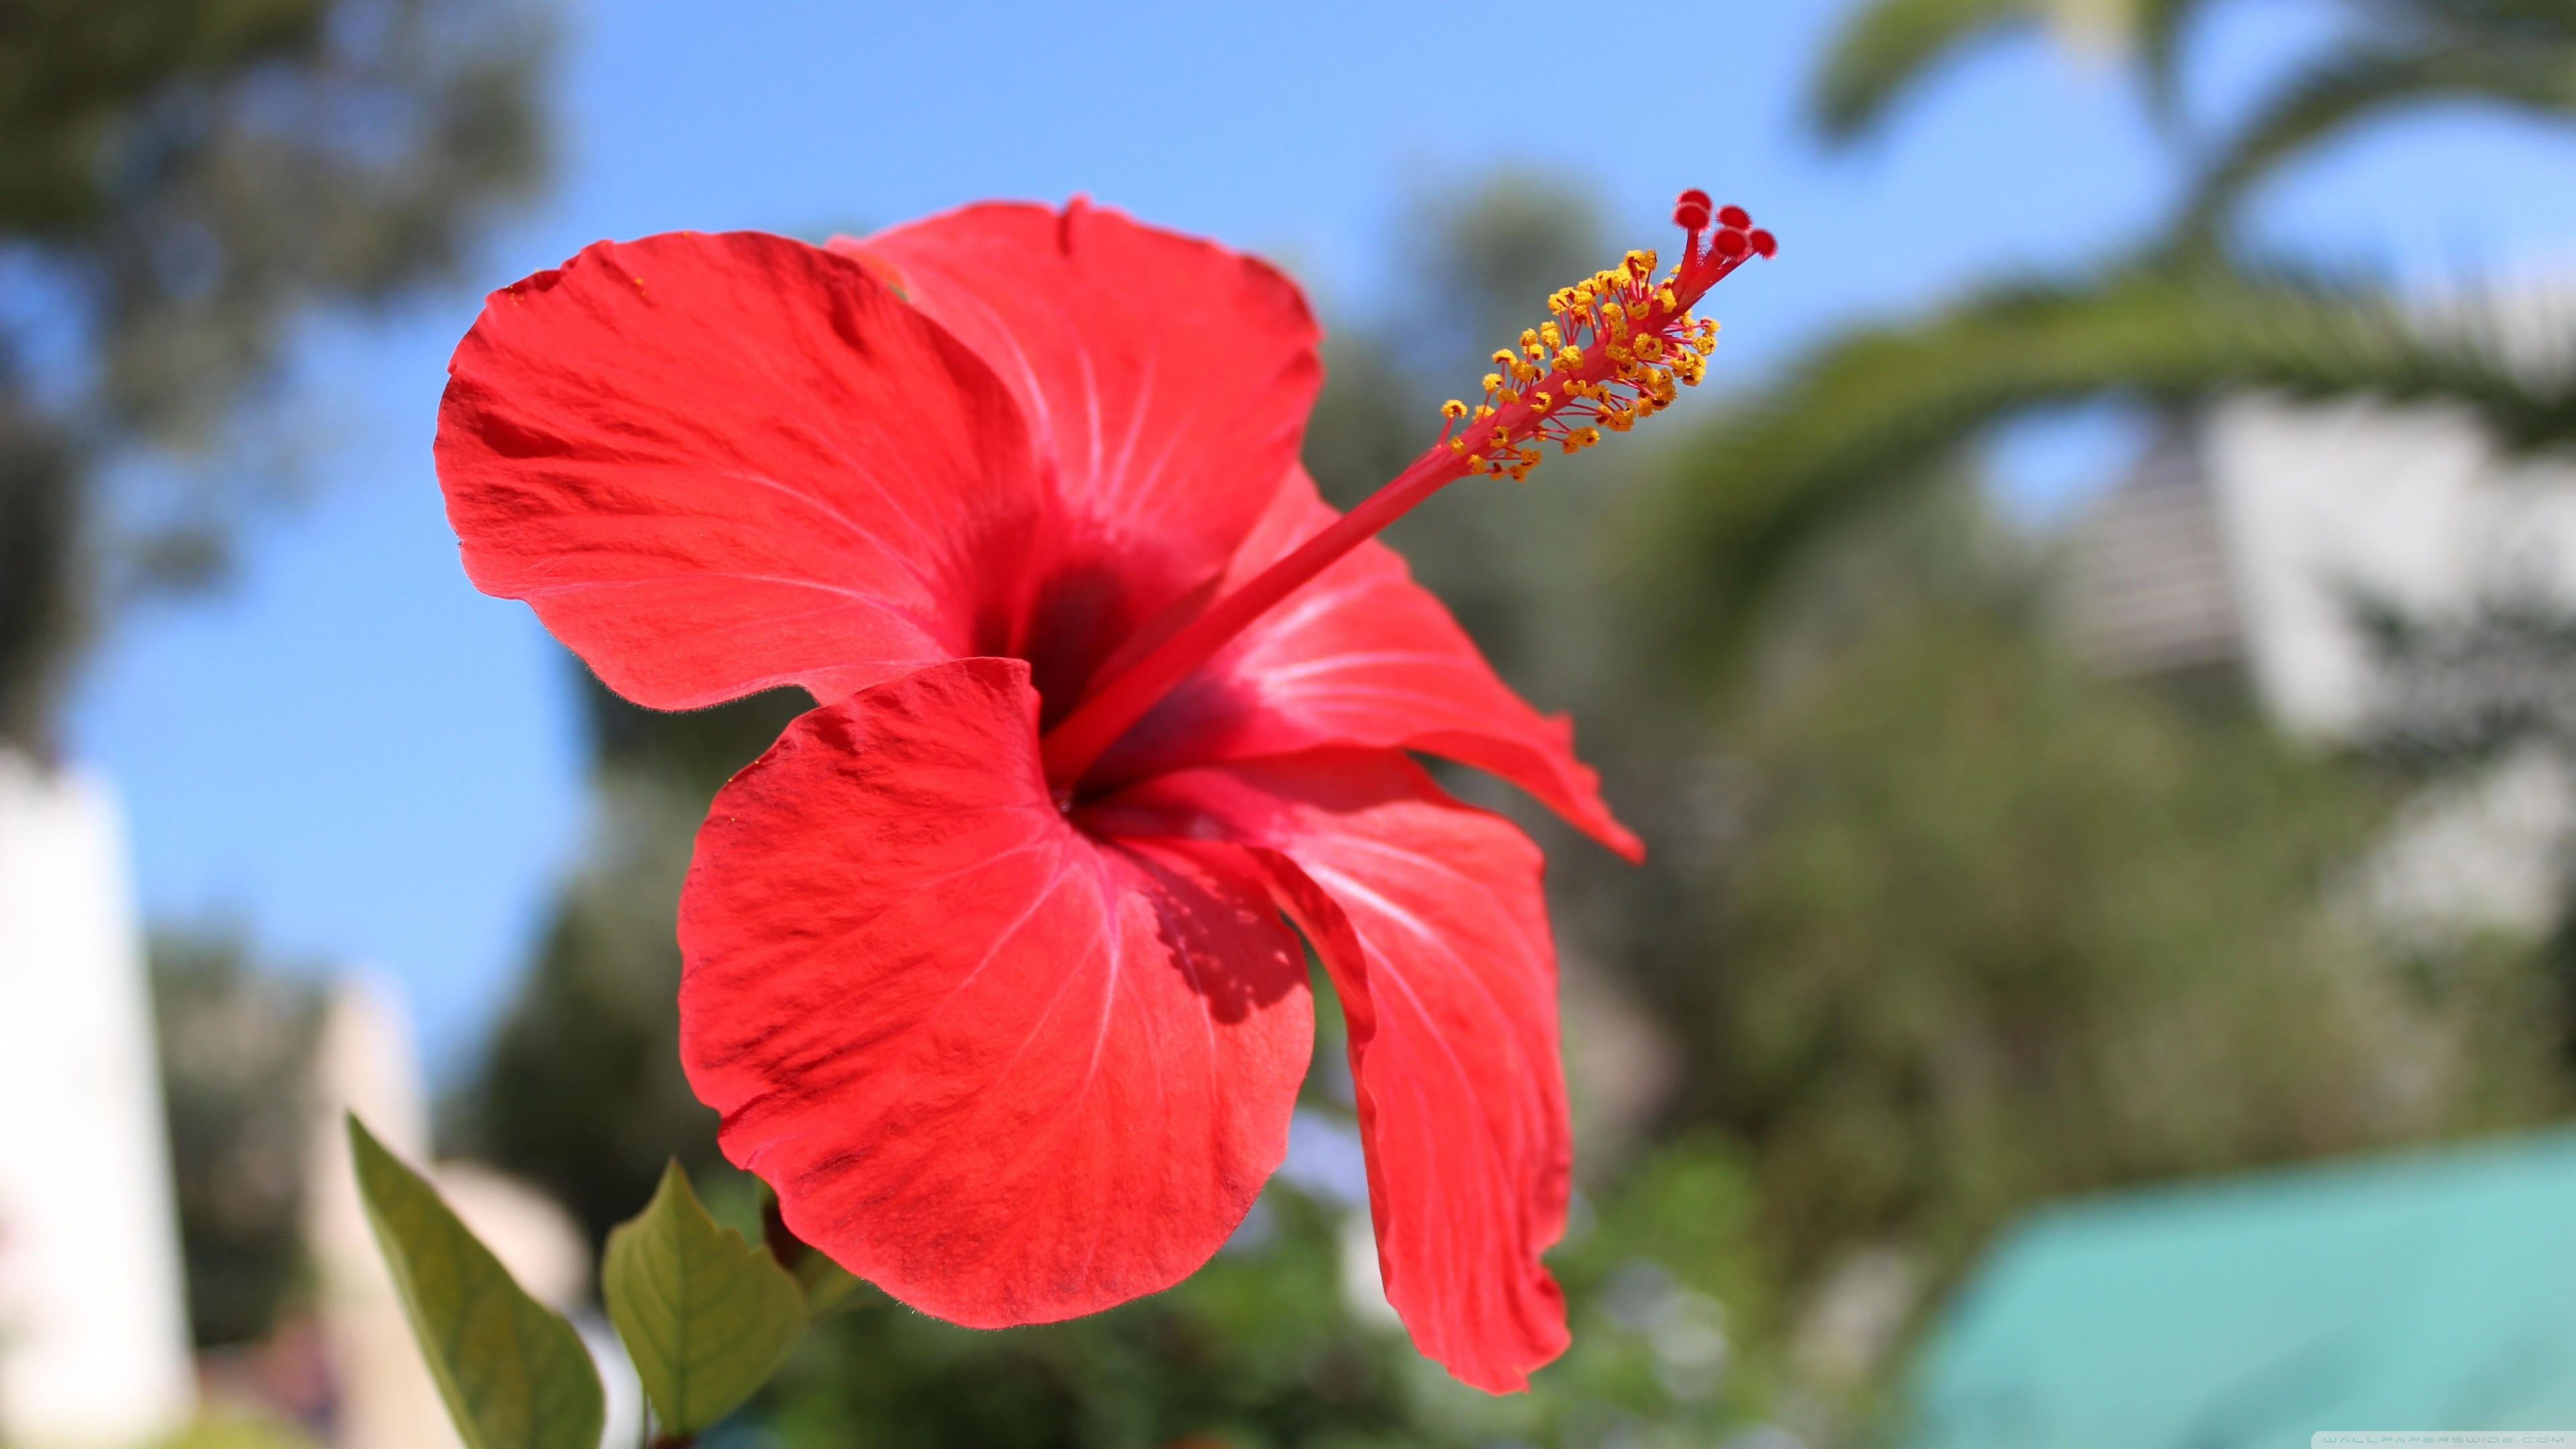 Hibiscus Flower Wallpaper 54 images 3840x2160